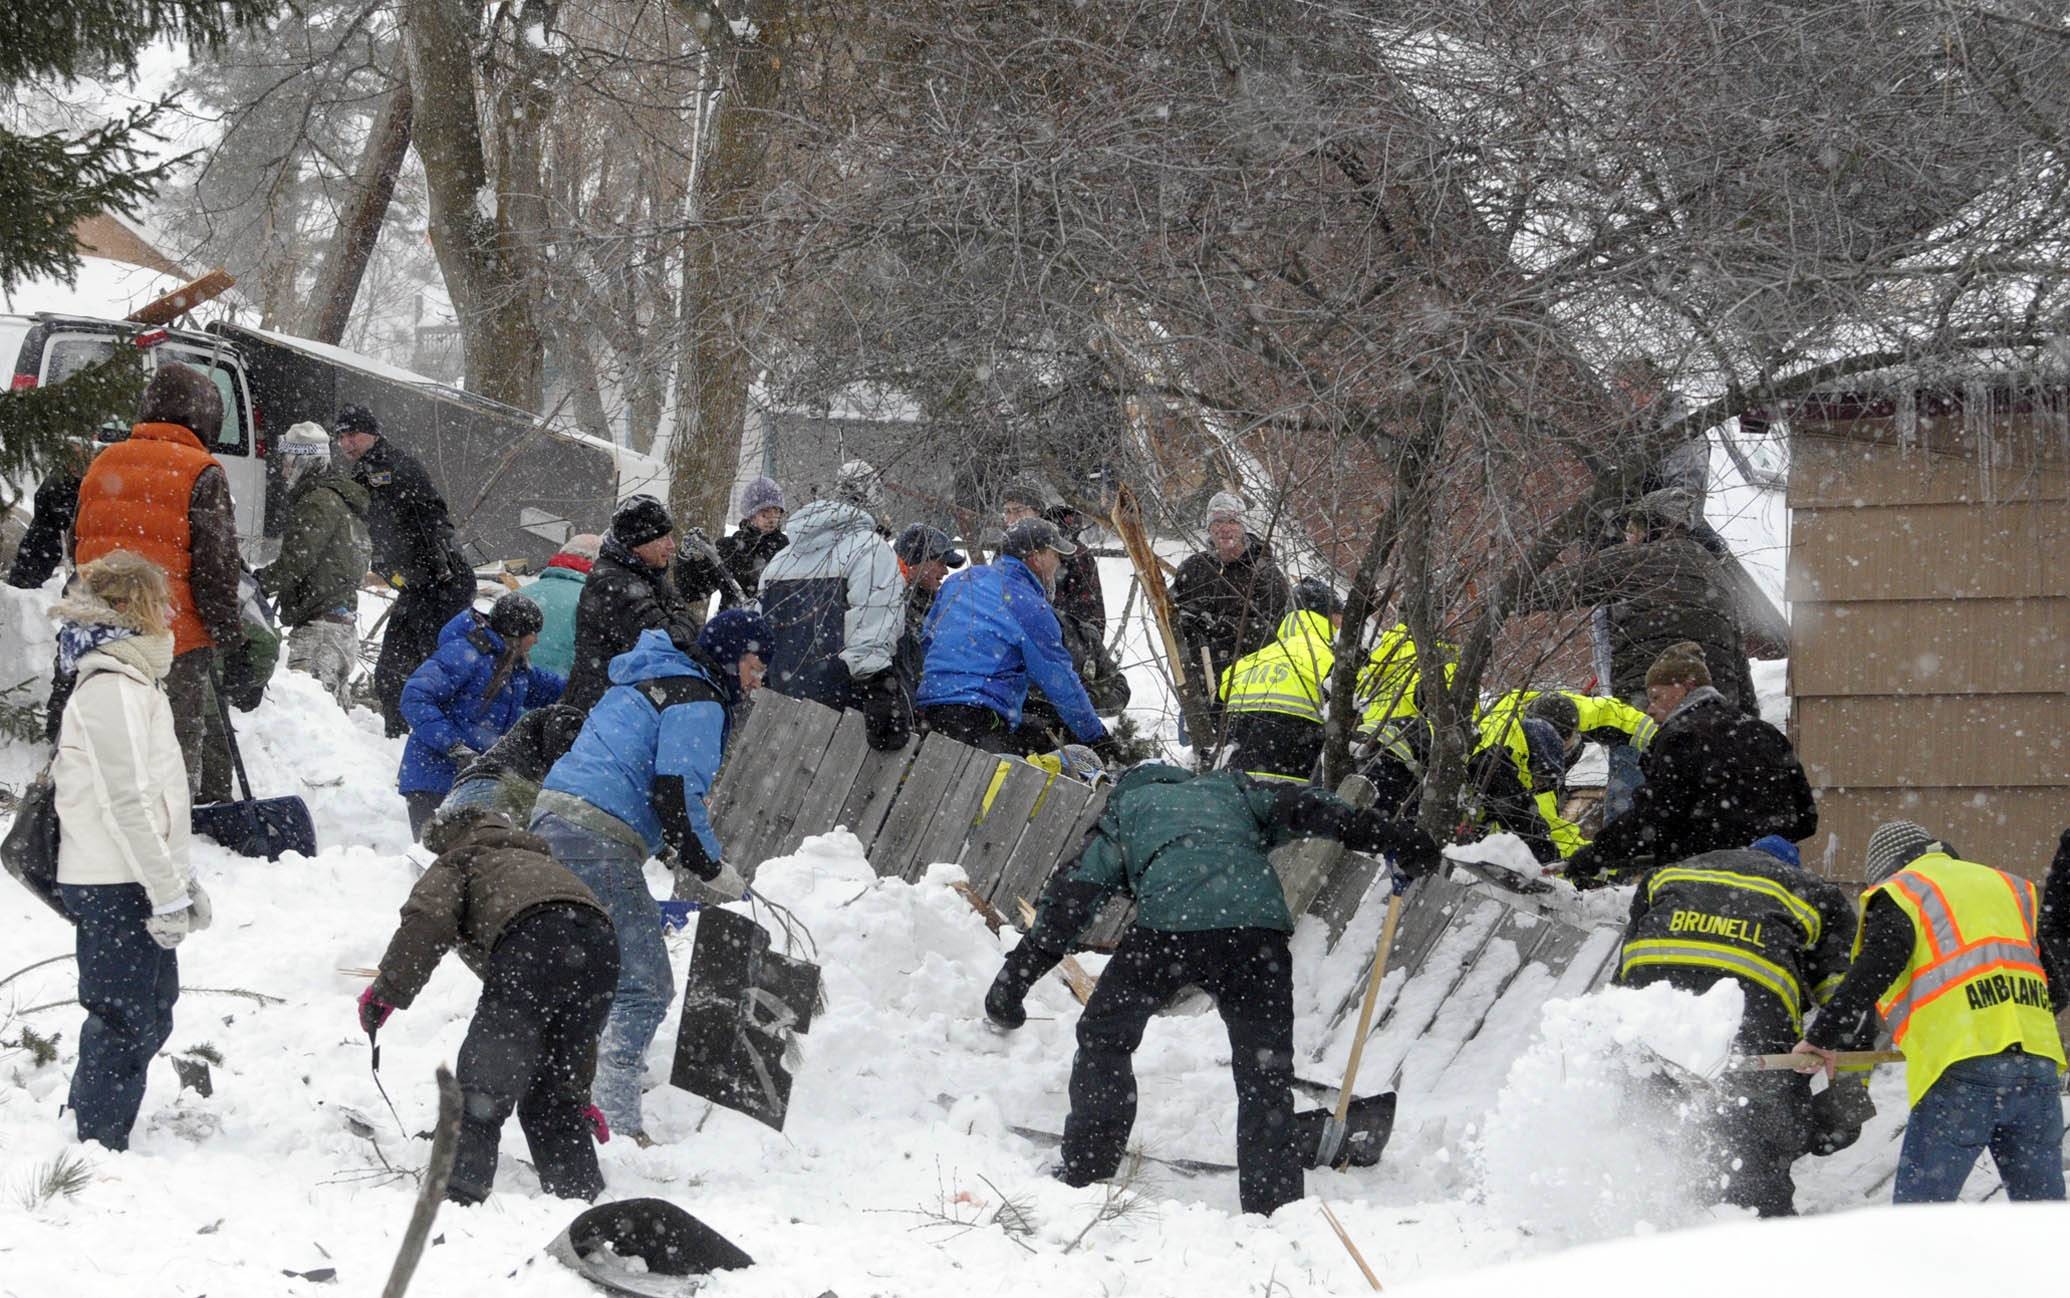 Rescuers look for a boy buried in the snow. The avalanche roared into a residential neighborhood and destroyed a house, but three people were found alive.